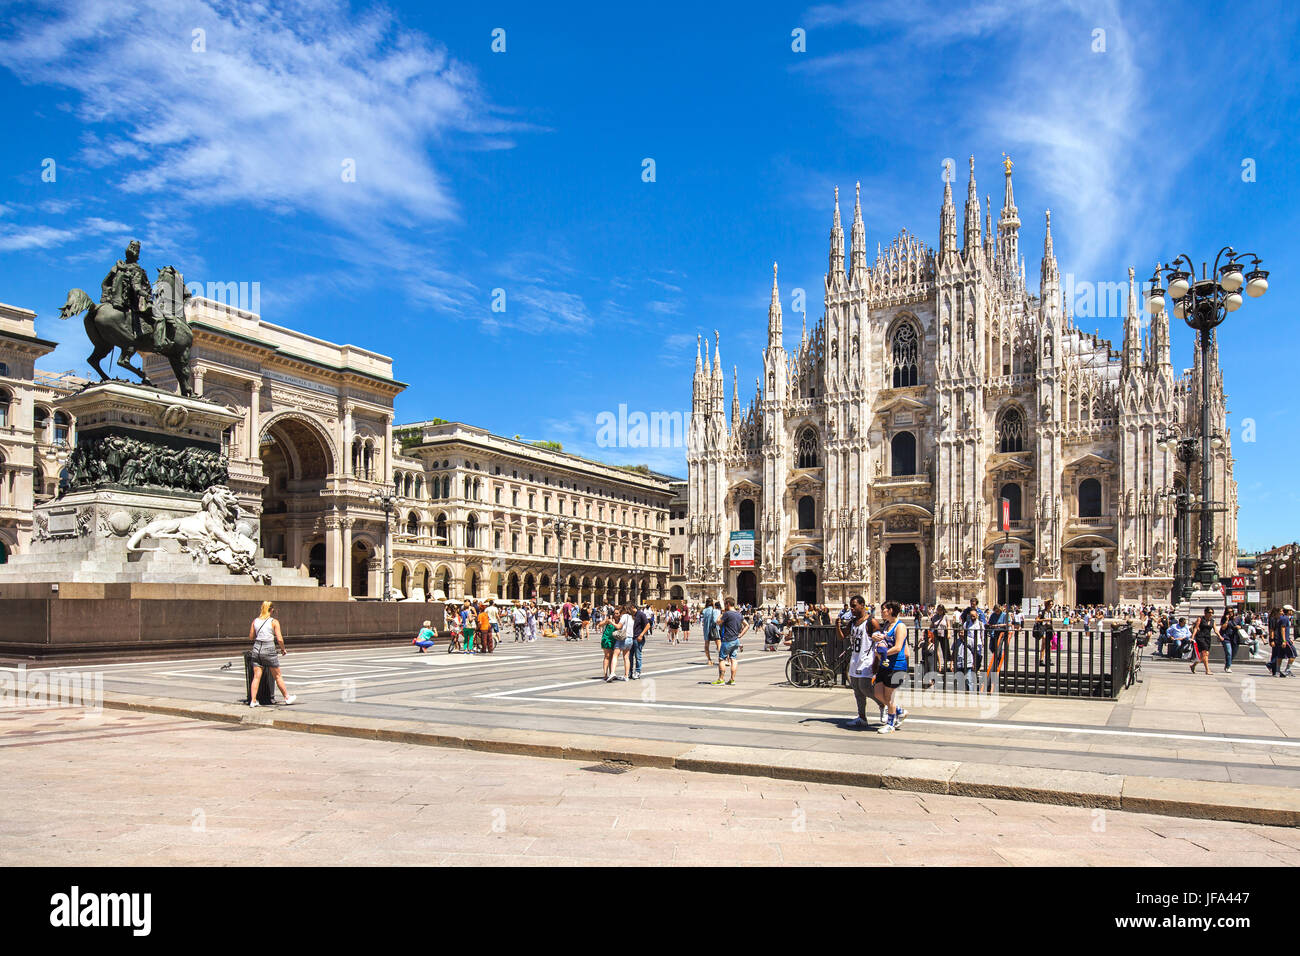 The Central area of Milan - Stock Image